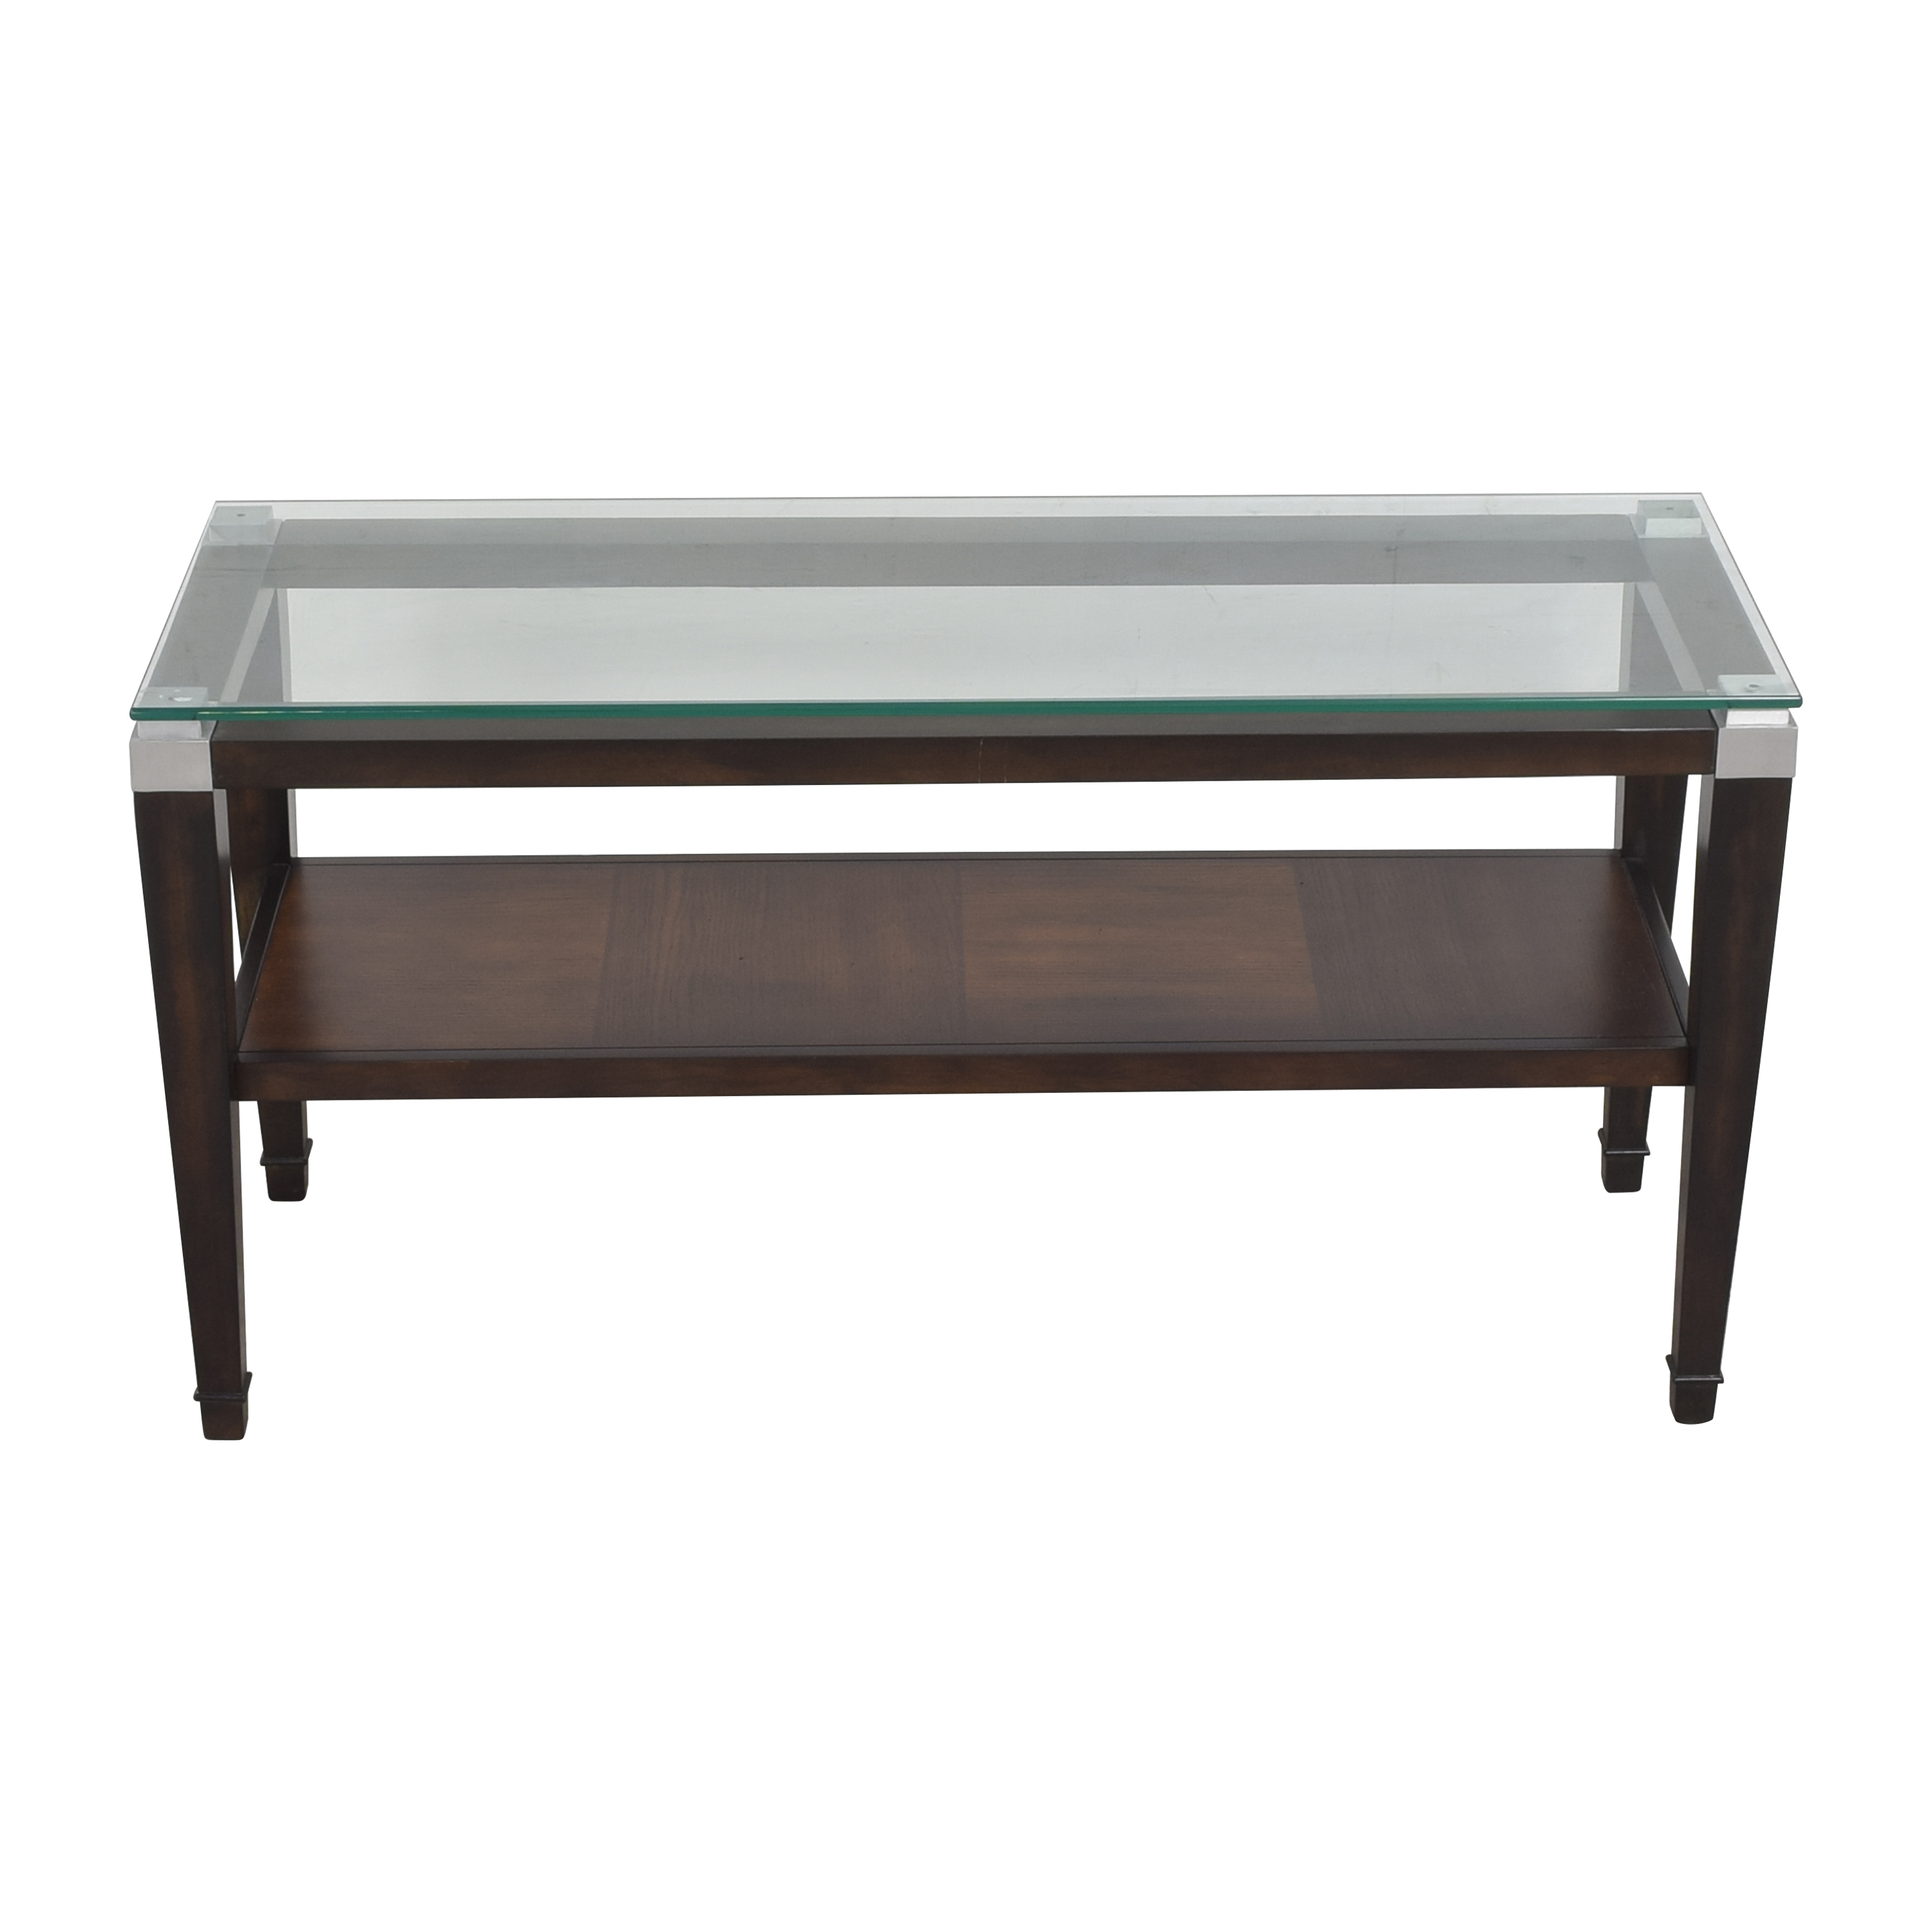 Raymour & Flanigan Raymour & Flanigan Dunhill Console Table pa